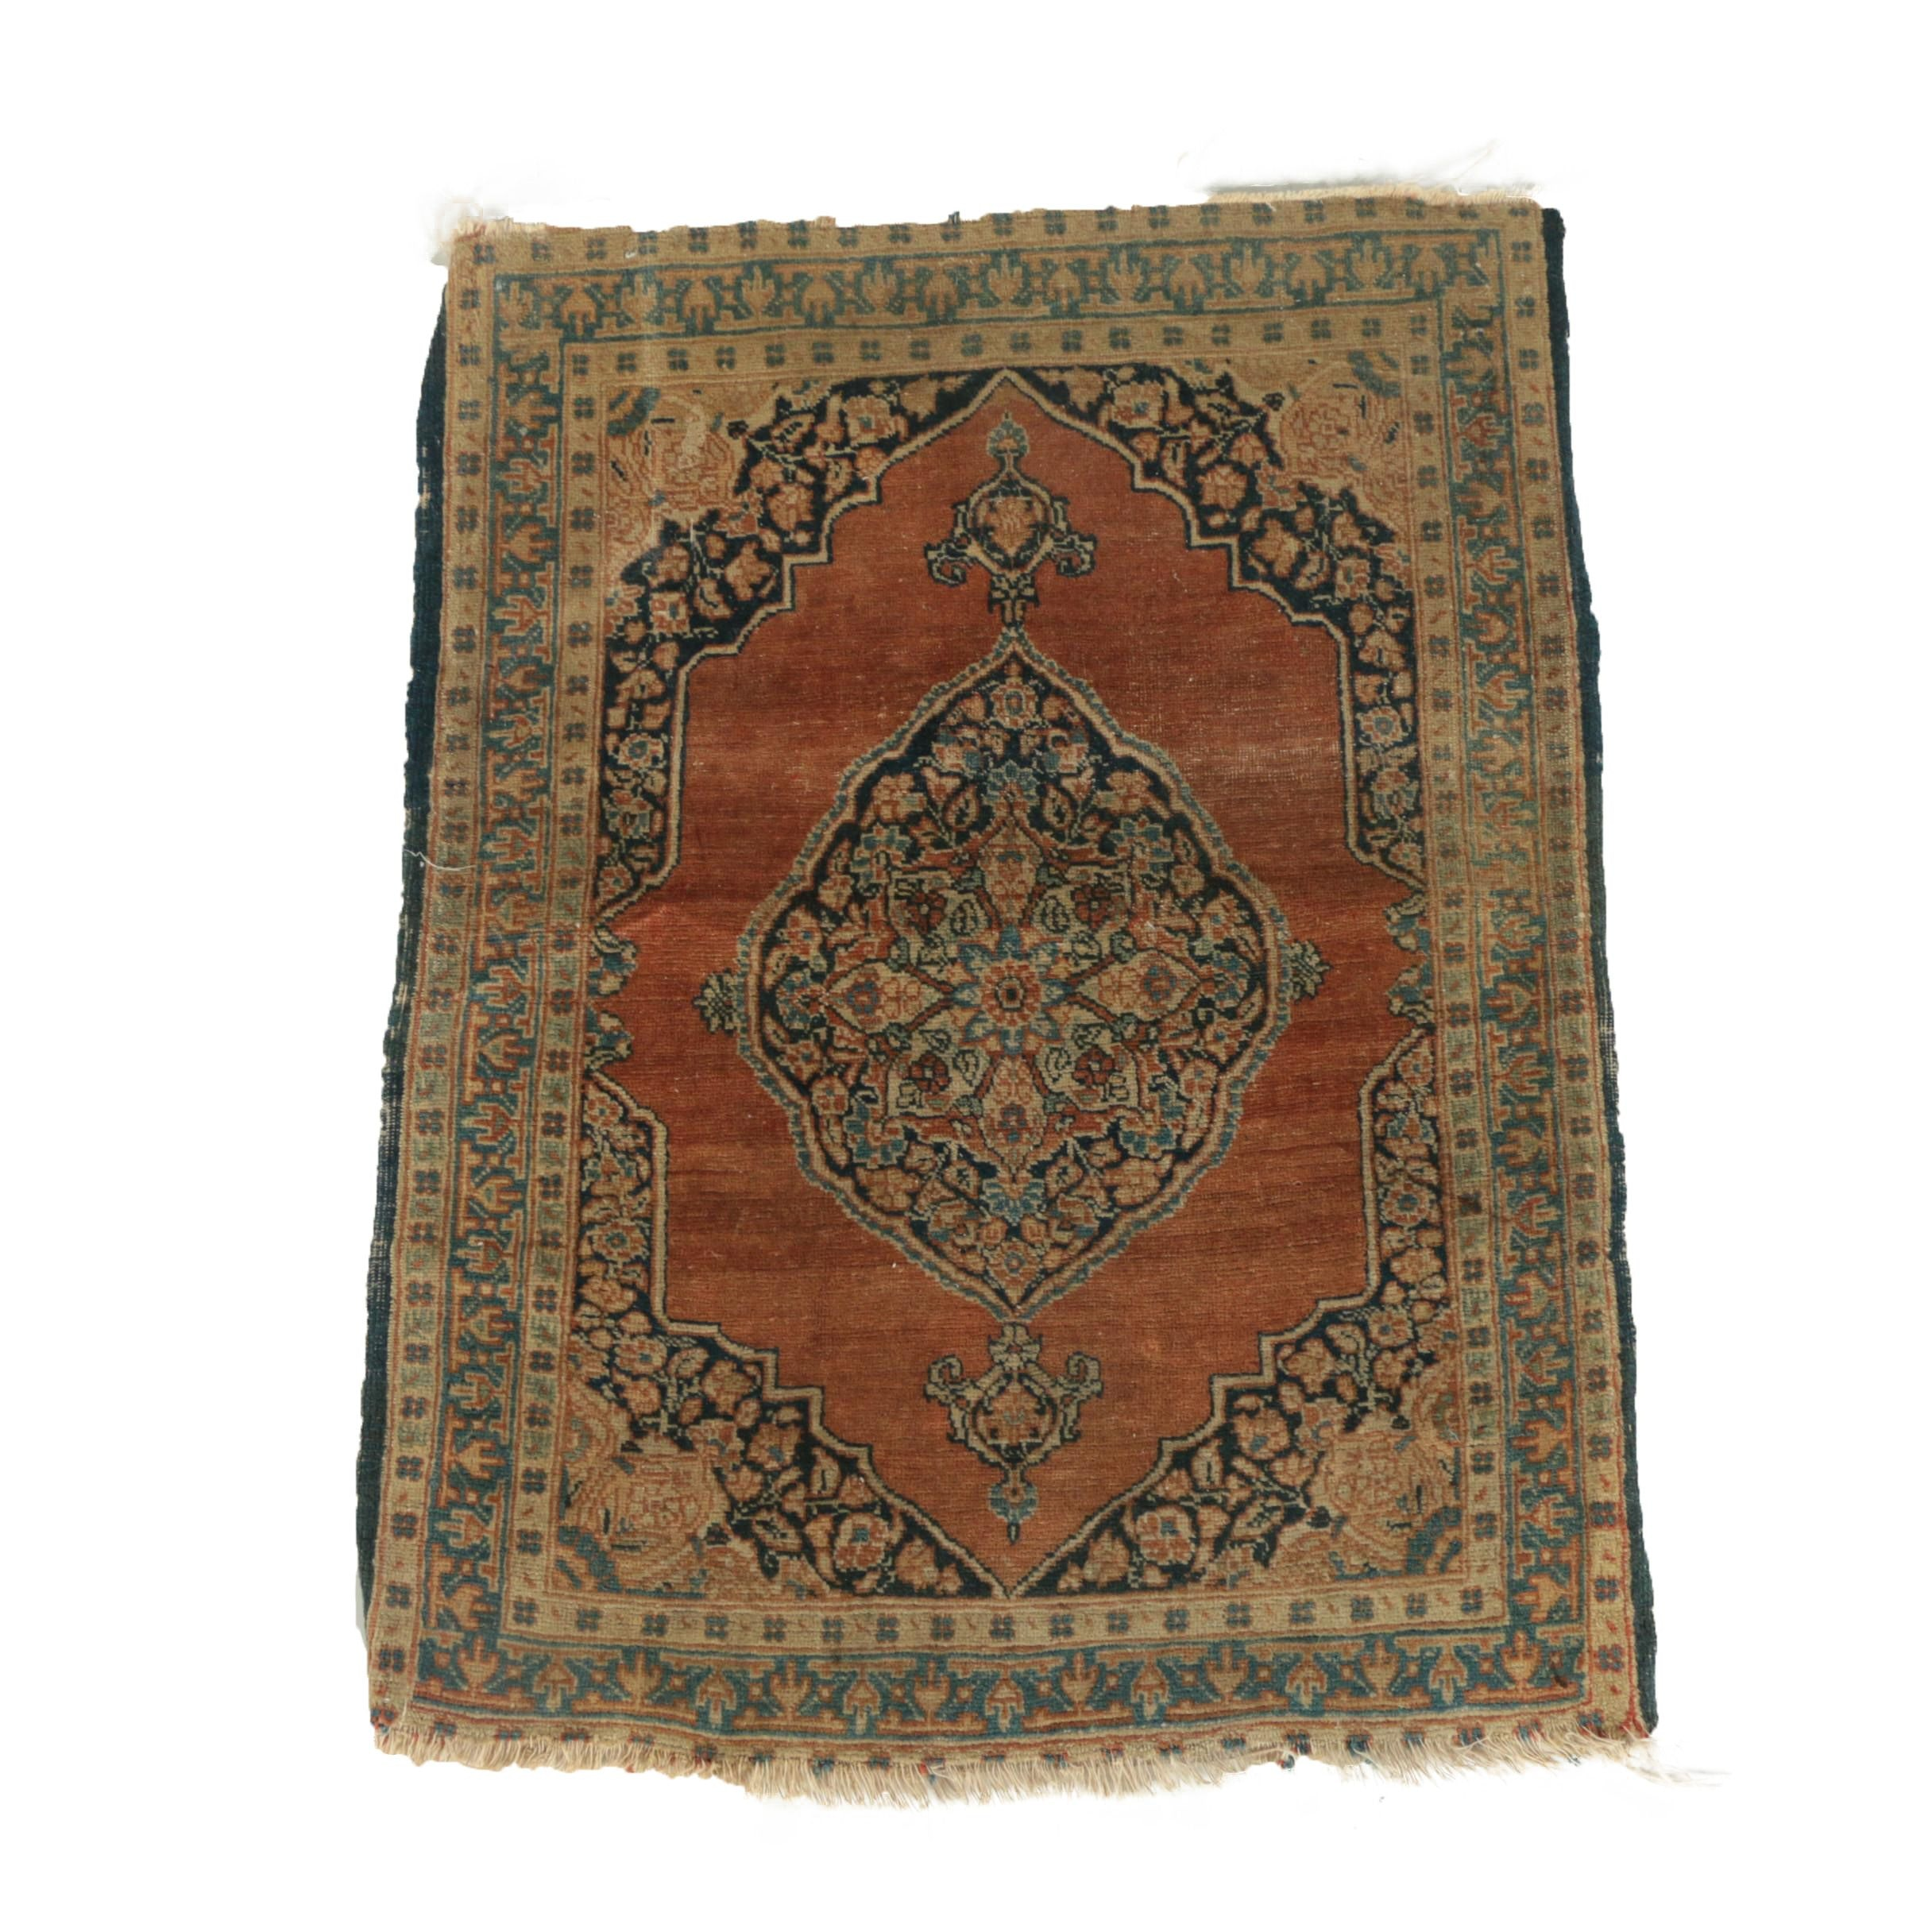 Antique Hand-Knotted Persian Qom Wool Accent Rug